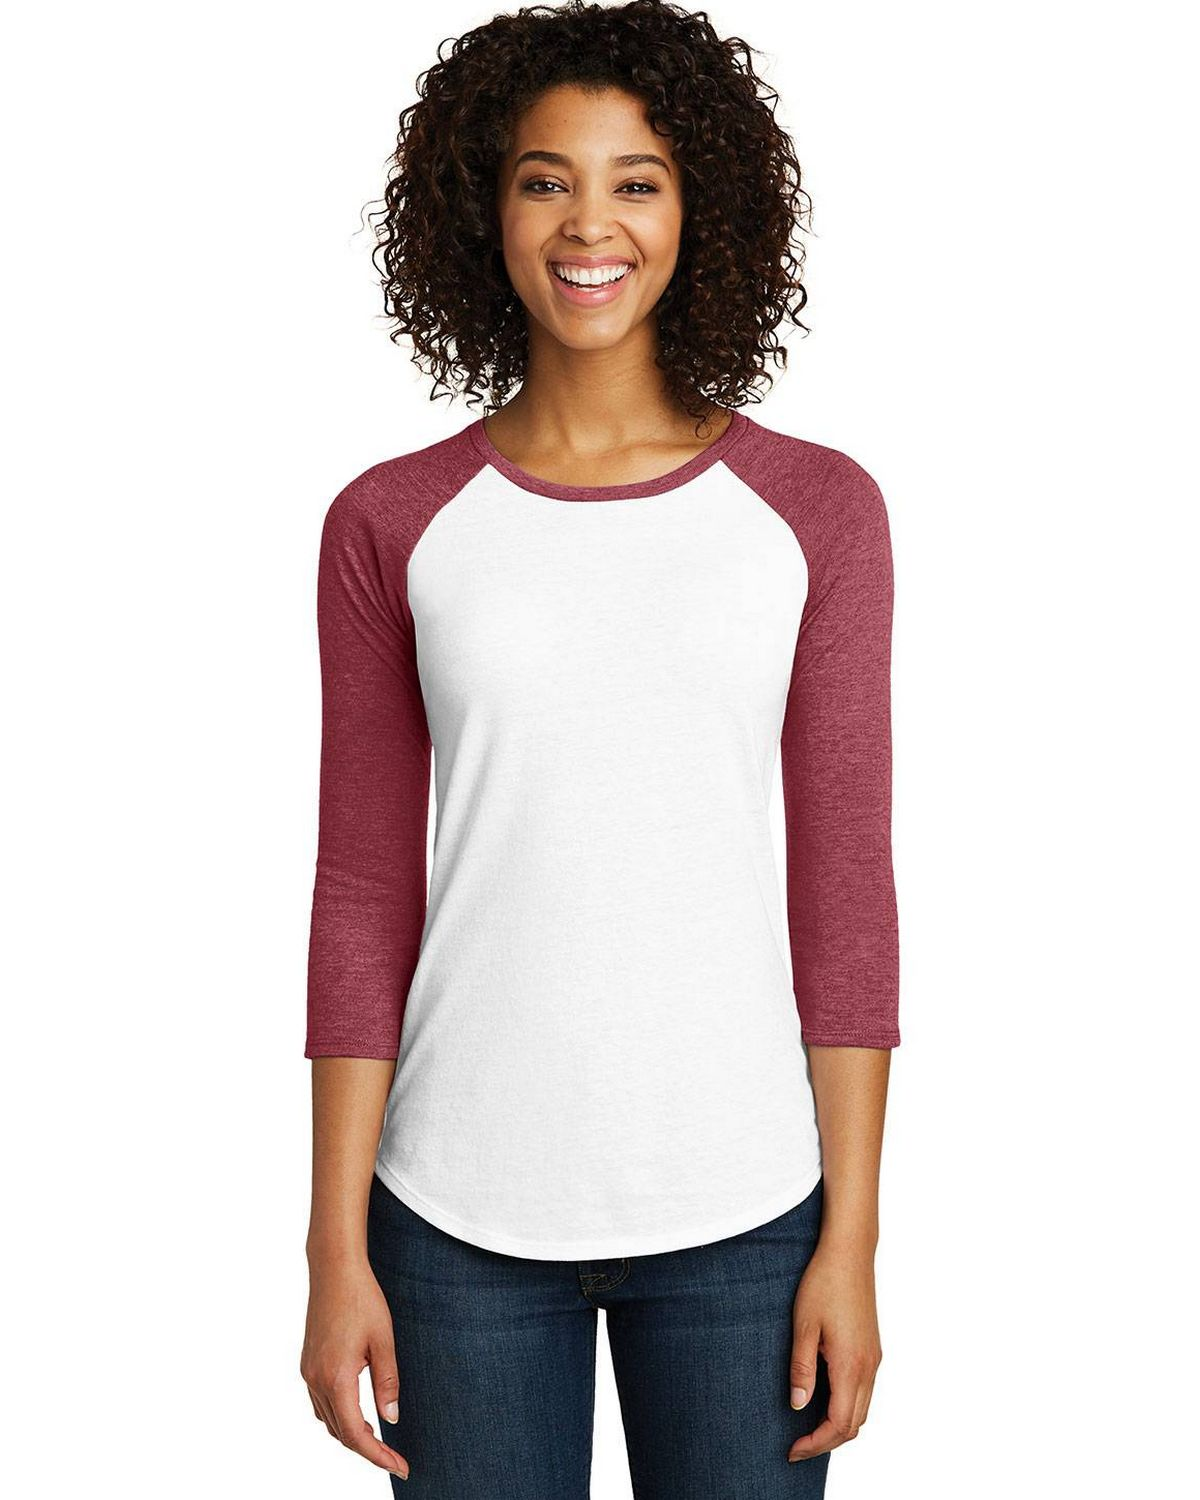 District DT6211 Womens Very Important 3/4 Sleeve Raglan T-Shirt